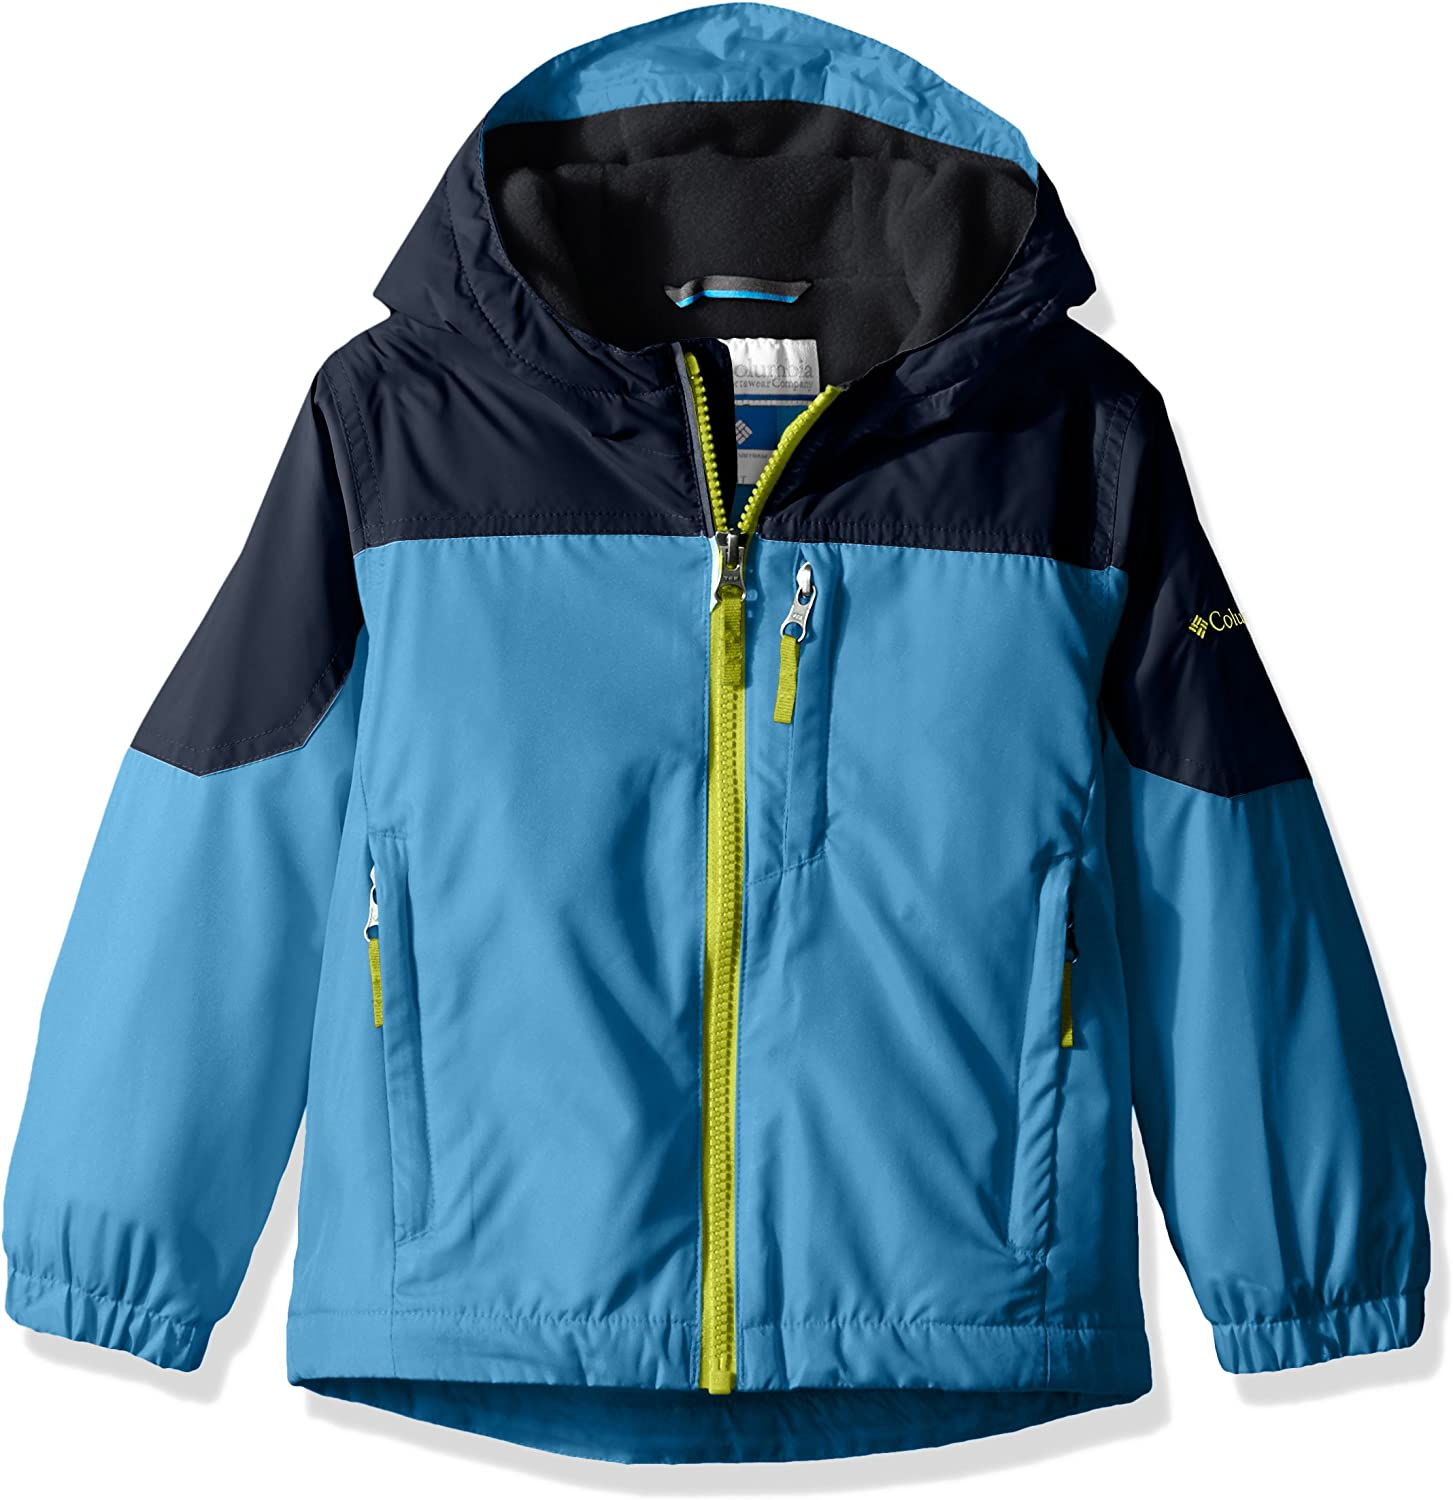 Columbia Ethan Pond/ Fleece Lined Jacket